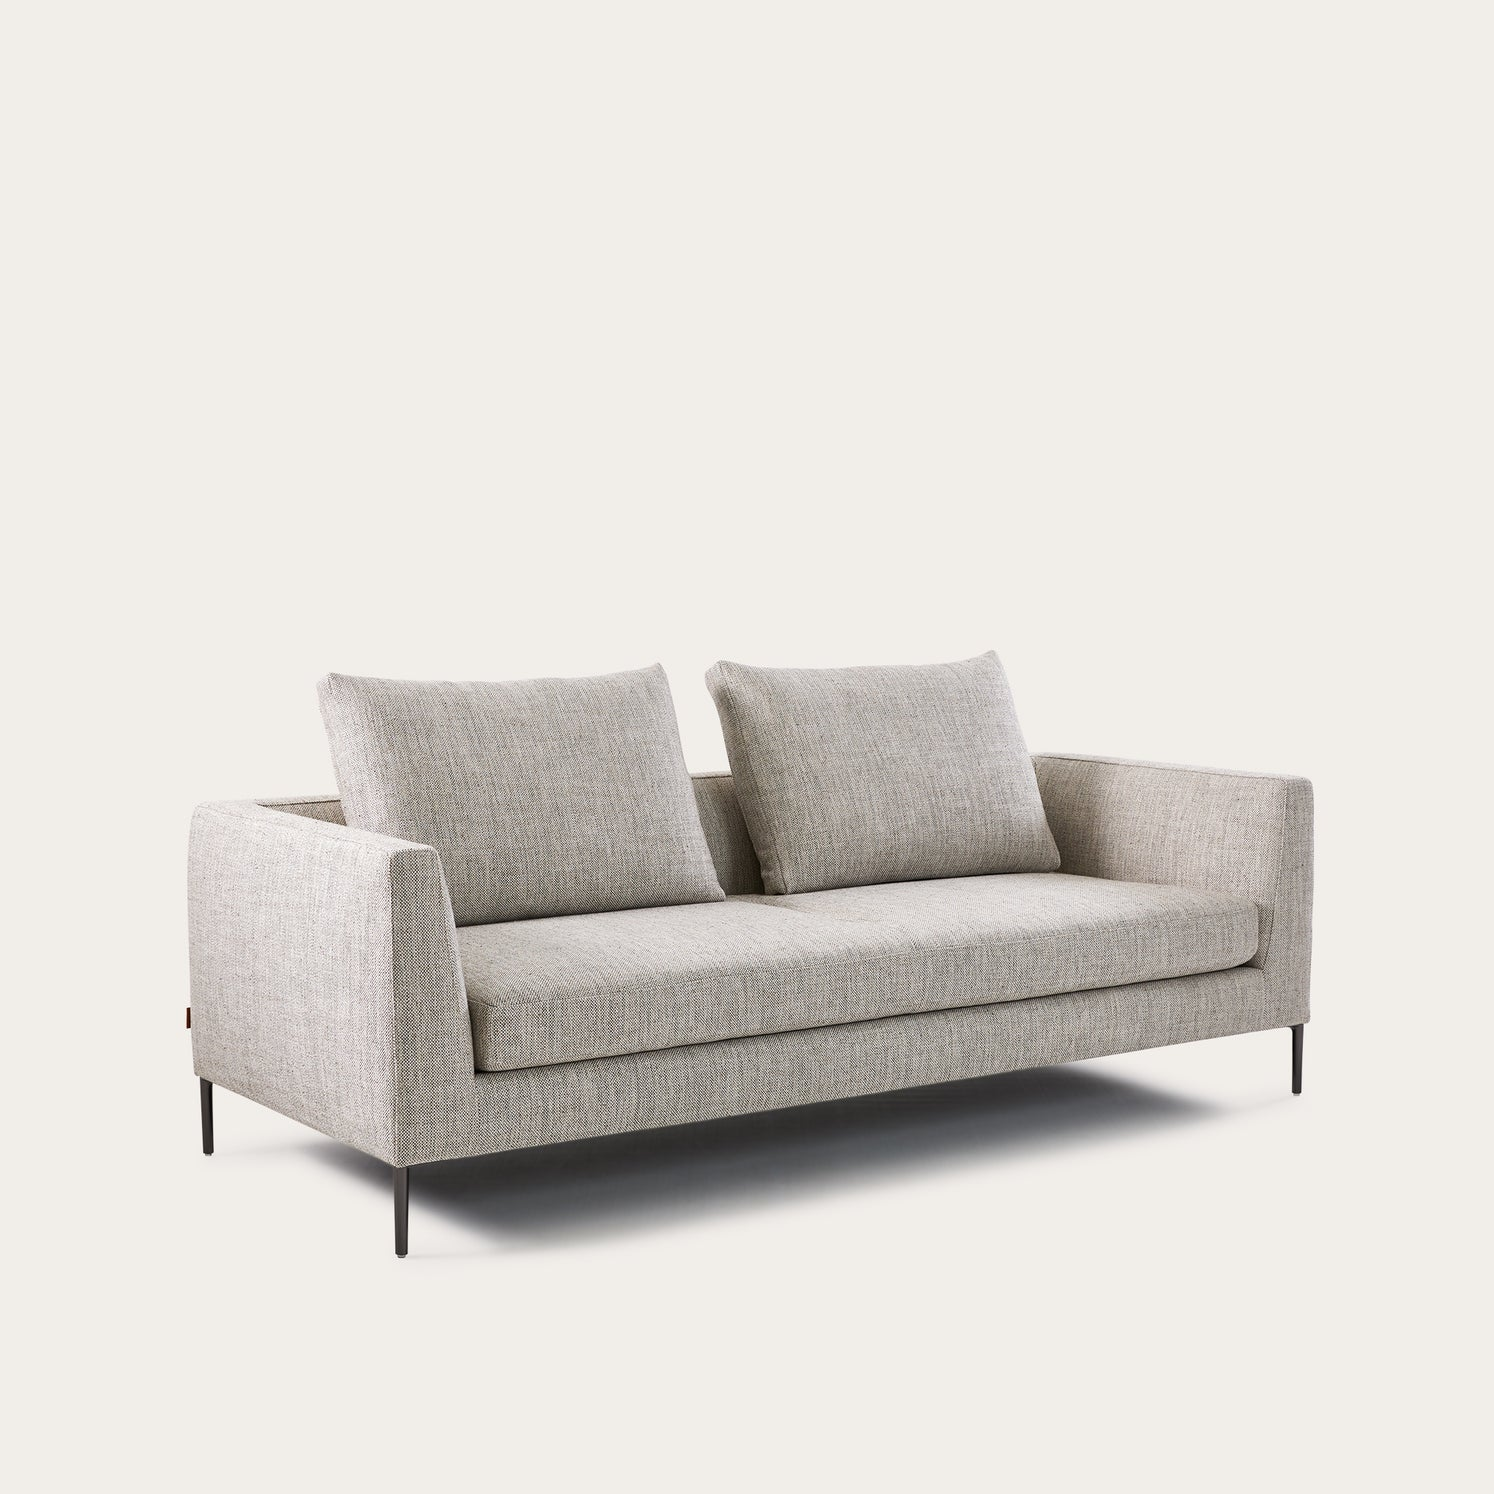 Daley 3 Seater Seating Niels Bendtsen Designer Furniture Sku: 134-240-10093